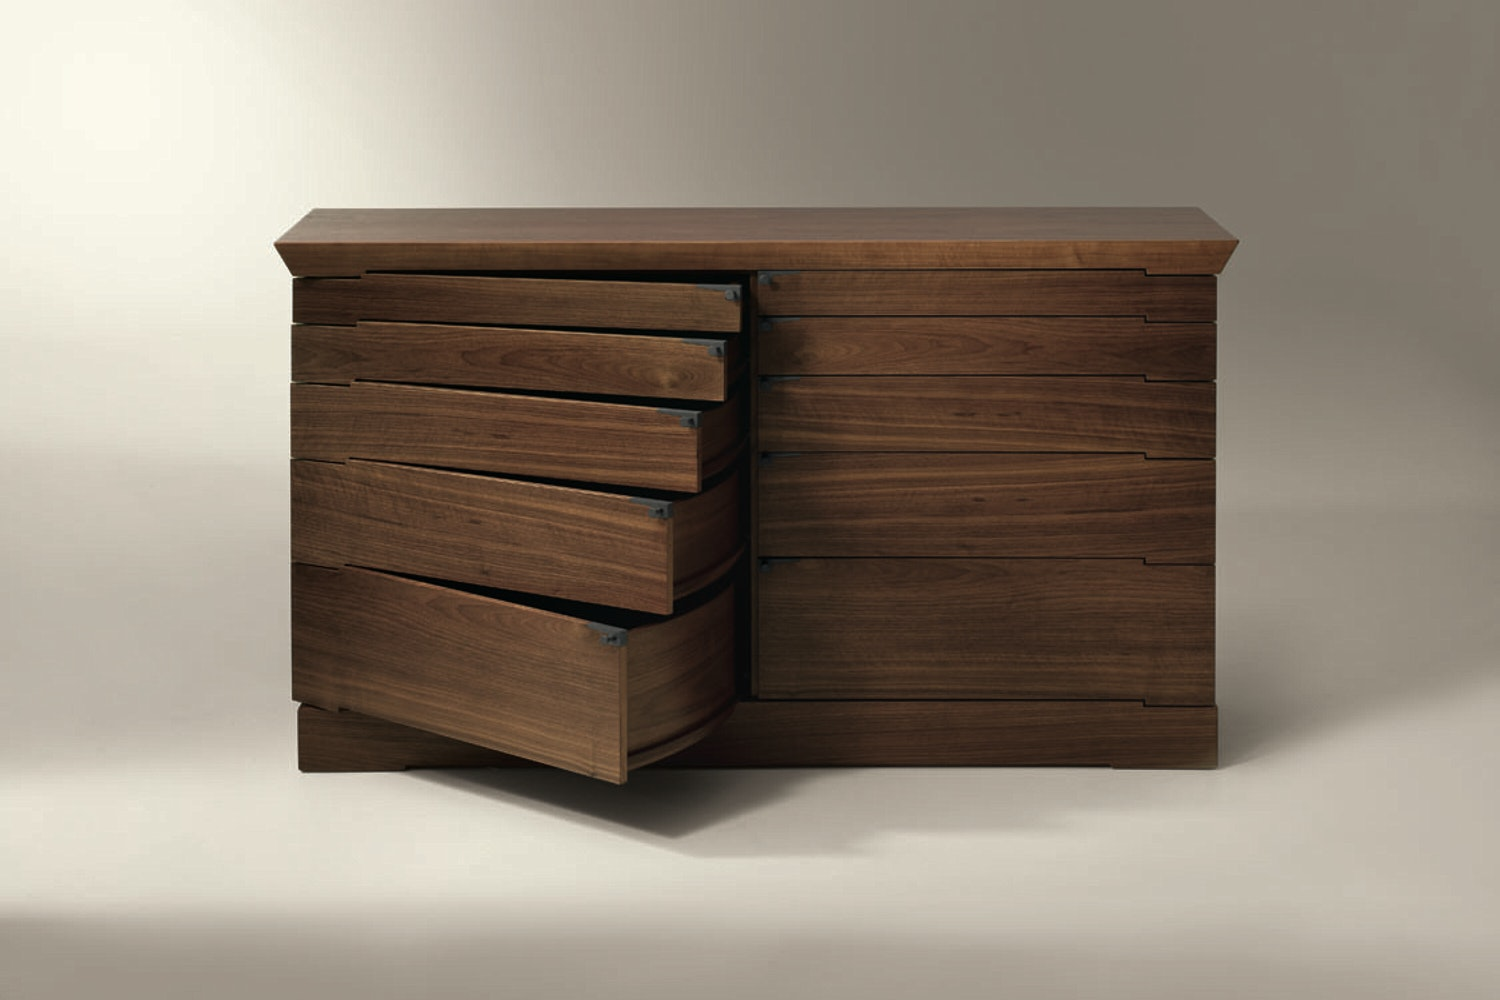 Eon Chest of Drawers by Chi Wing Lo for Giorgetti